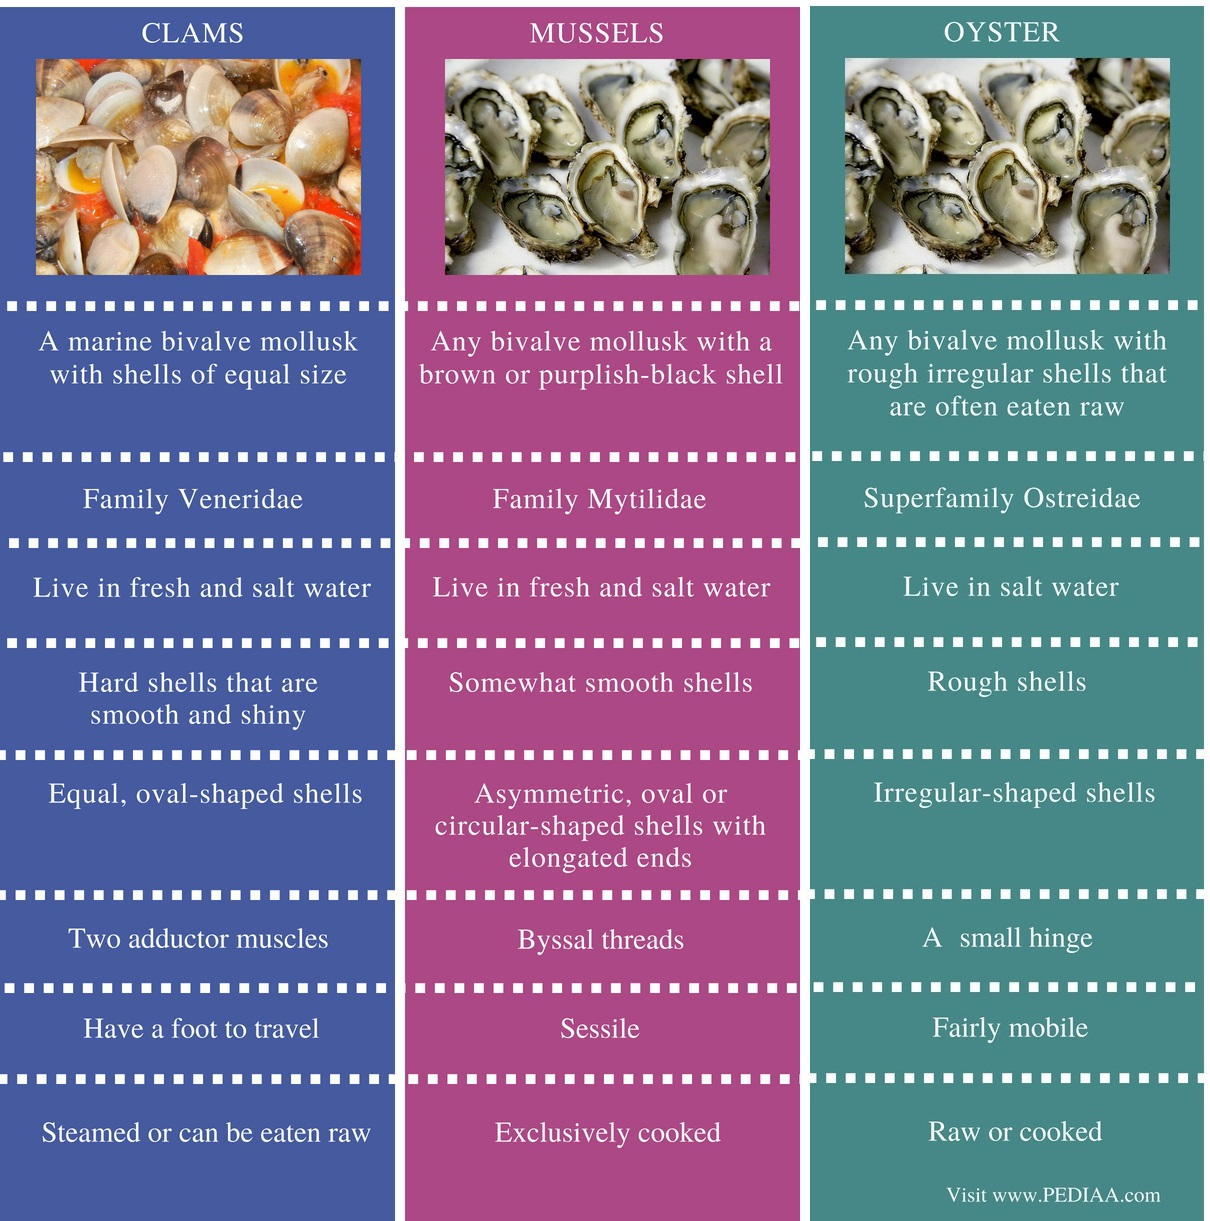 Difference Between Clams Mussels and Oysters - Comparison Summary (2)